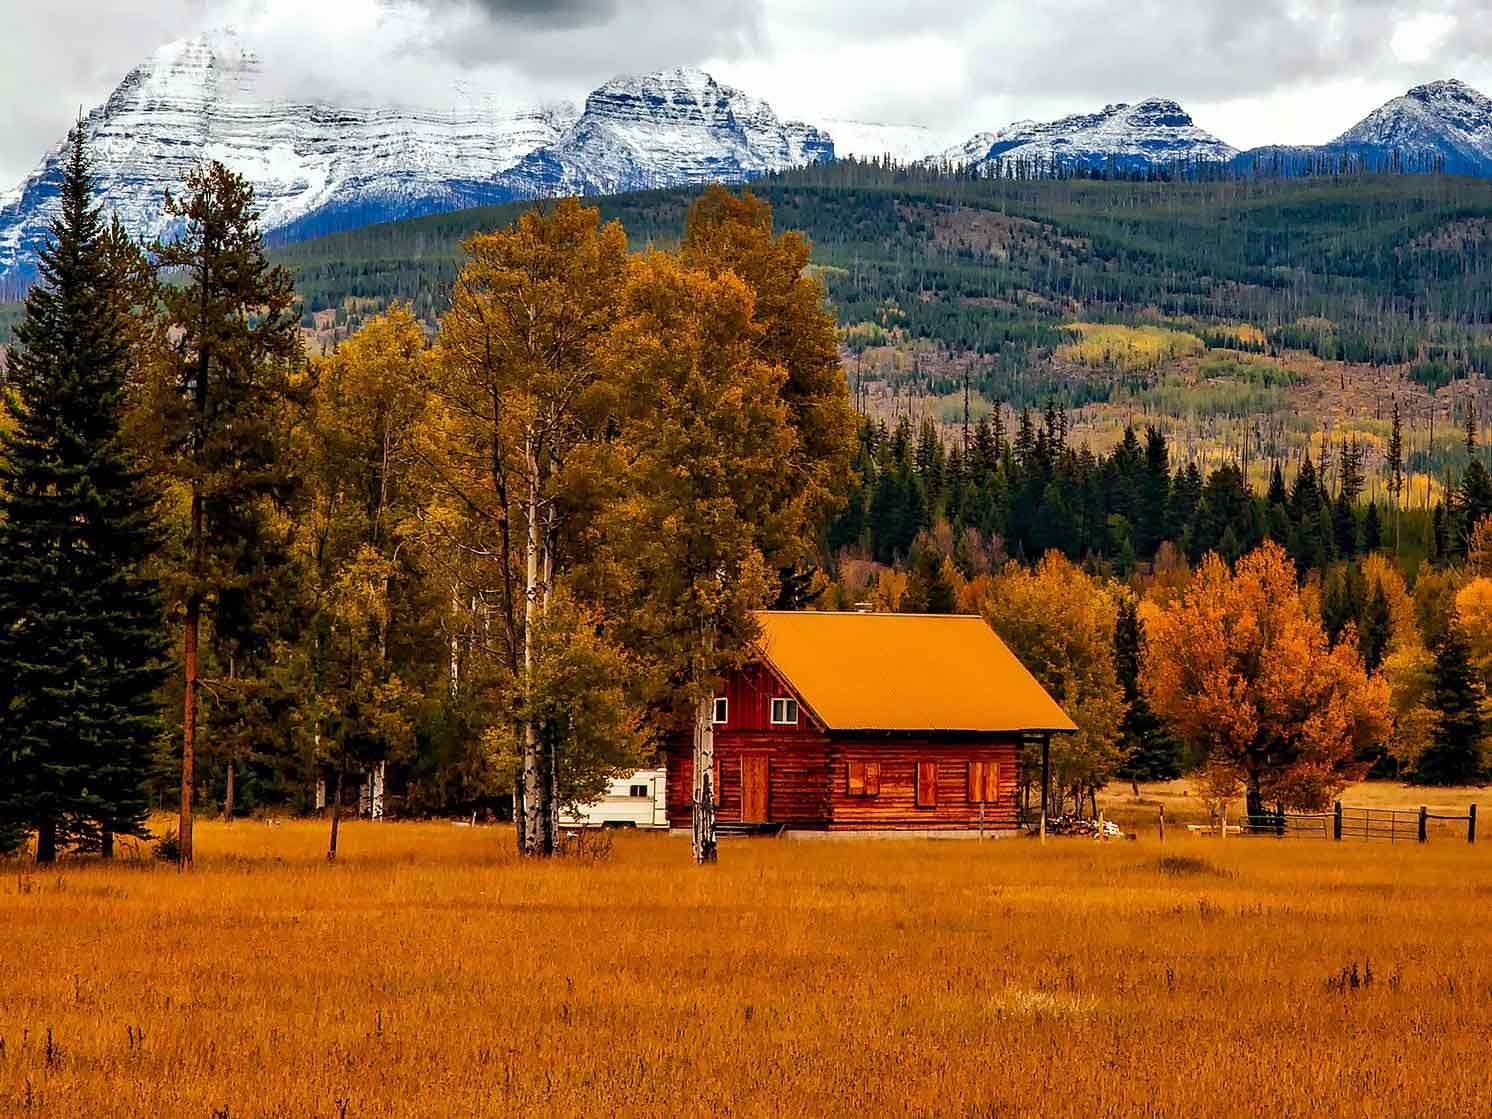 Cabin surrounded by autumnal foliage